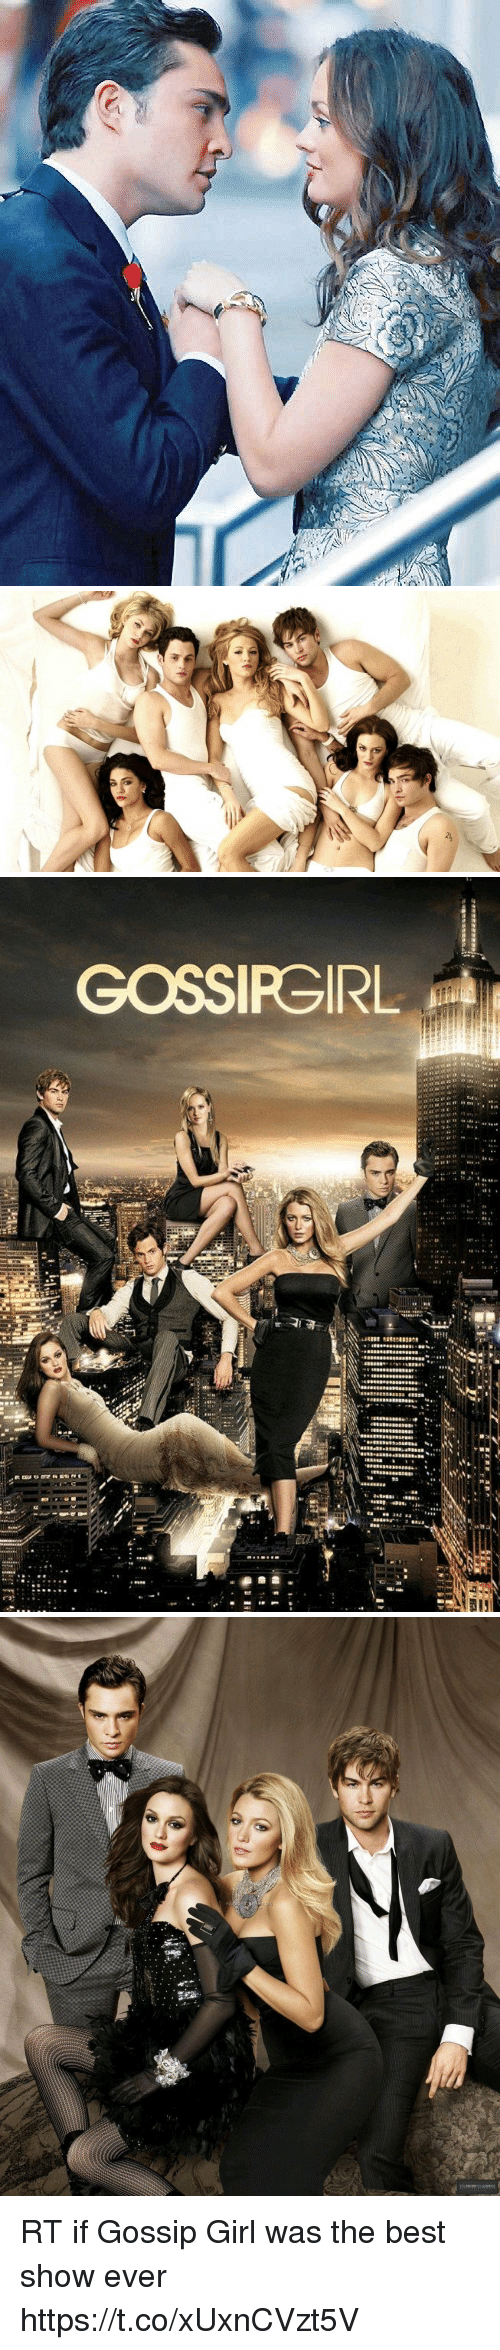 Gossip Girl: RT if Gossip Girl was the best show ever https://t.co/xUxnCVzt5V